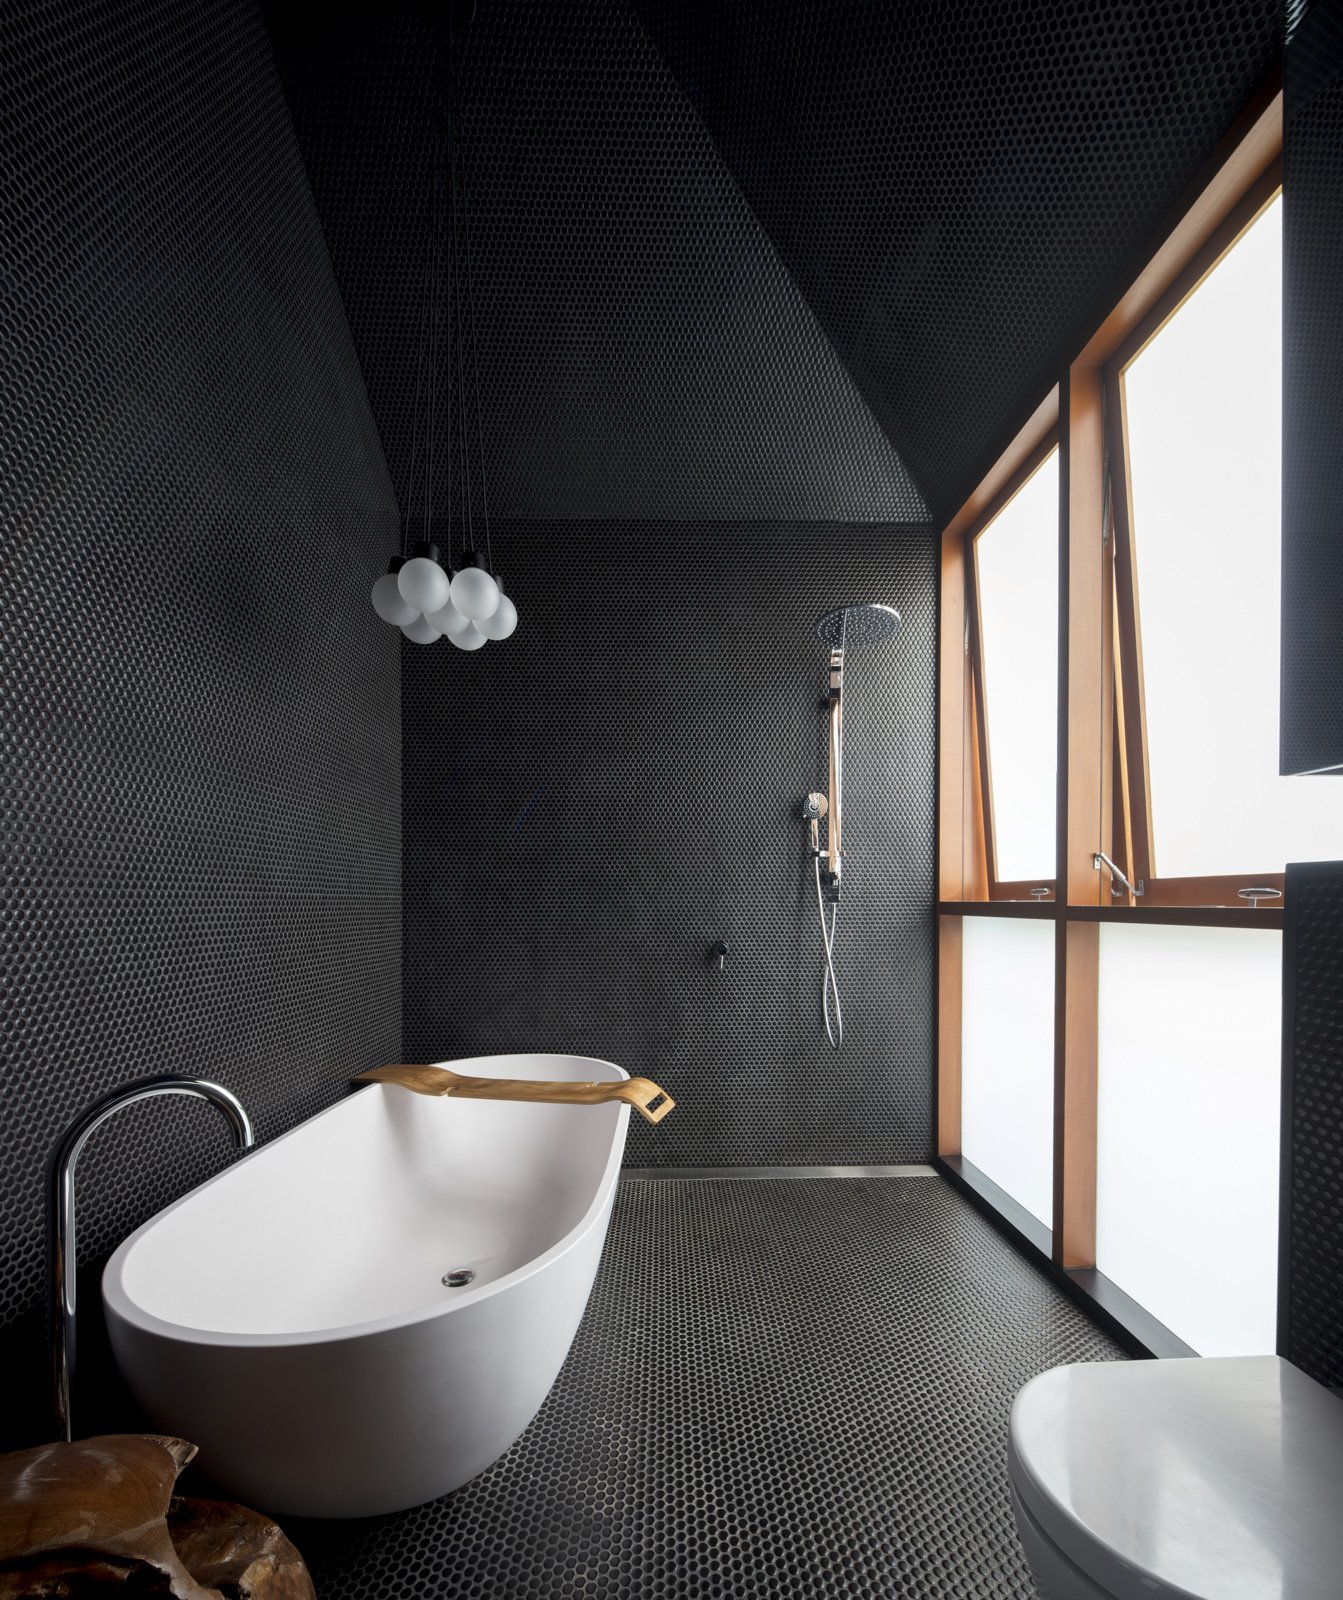 Photo 2 of 9 in 9 Modern Bathroom Ideas That Go Off the Beaten Path from A Dark Sydney Home Finds Light With a Unifying Expansion - Dwell & Photo 2 of 9 in 9 Modern Bathroom Ideas That Go Off the Beaten Path ...